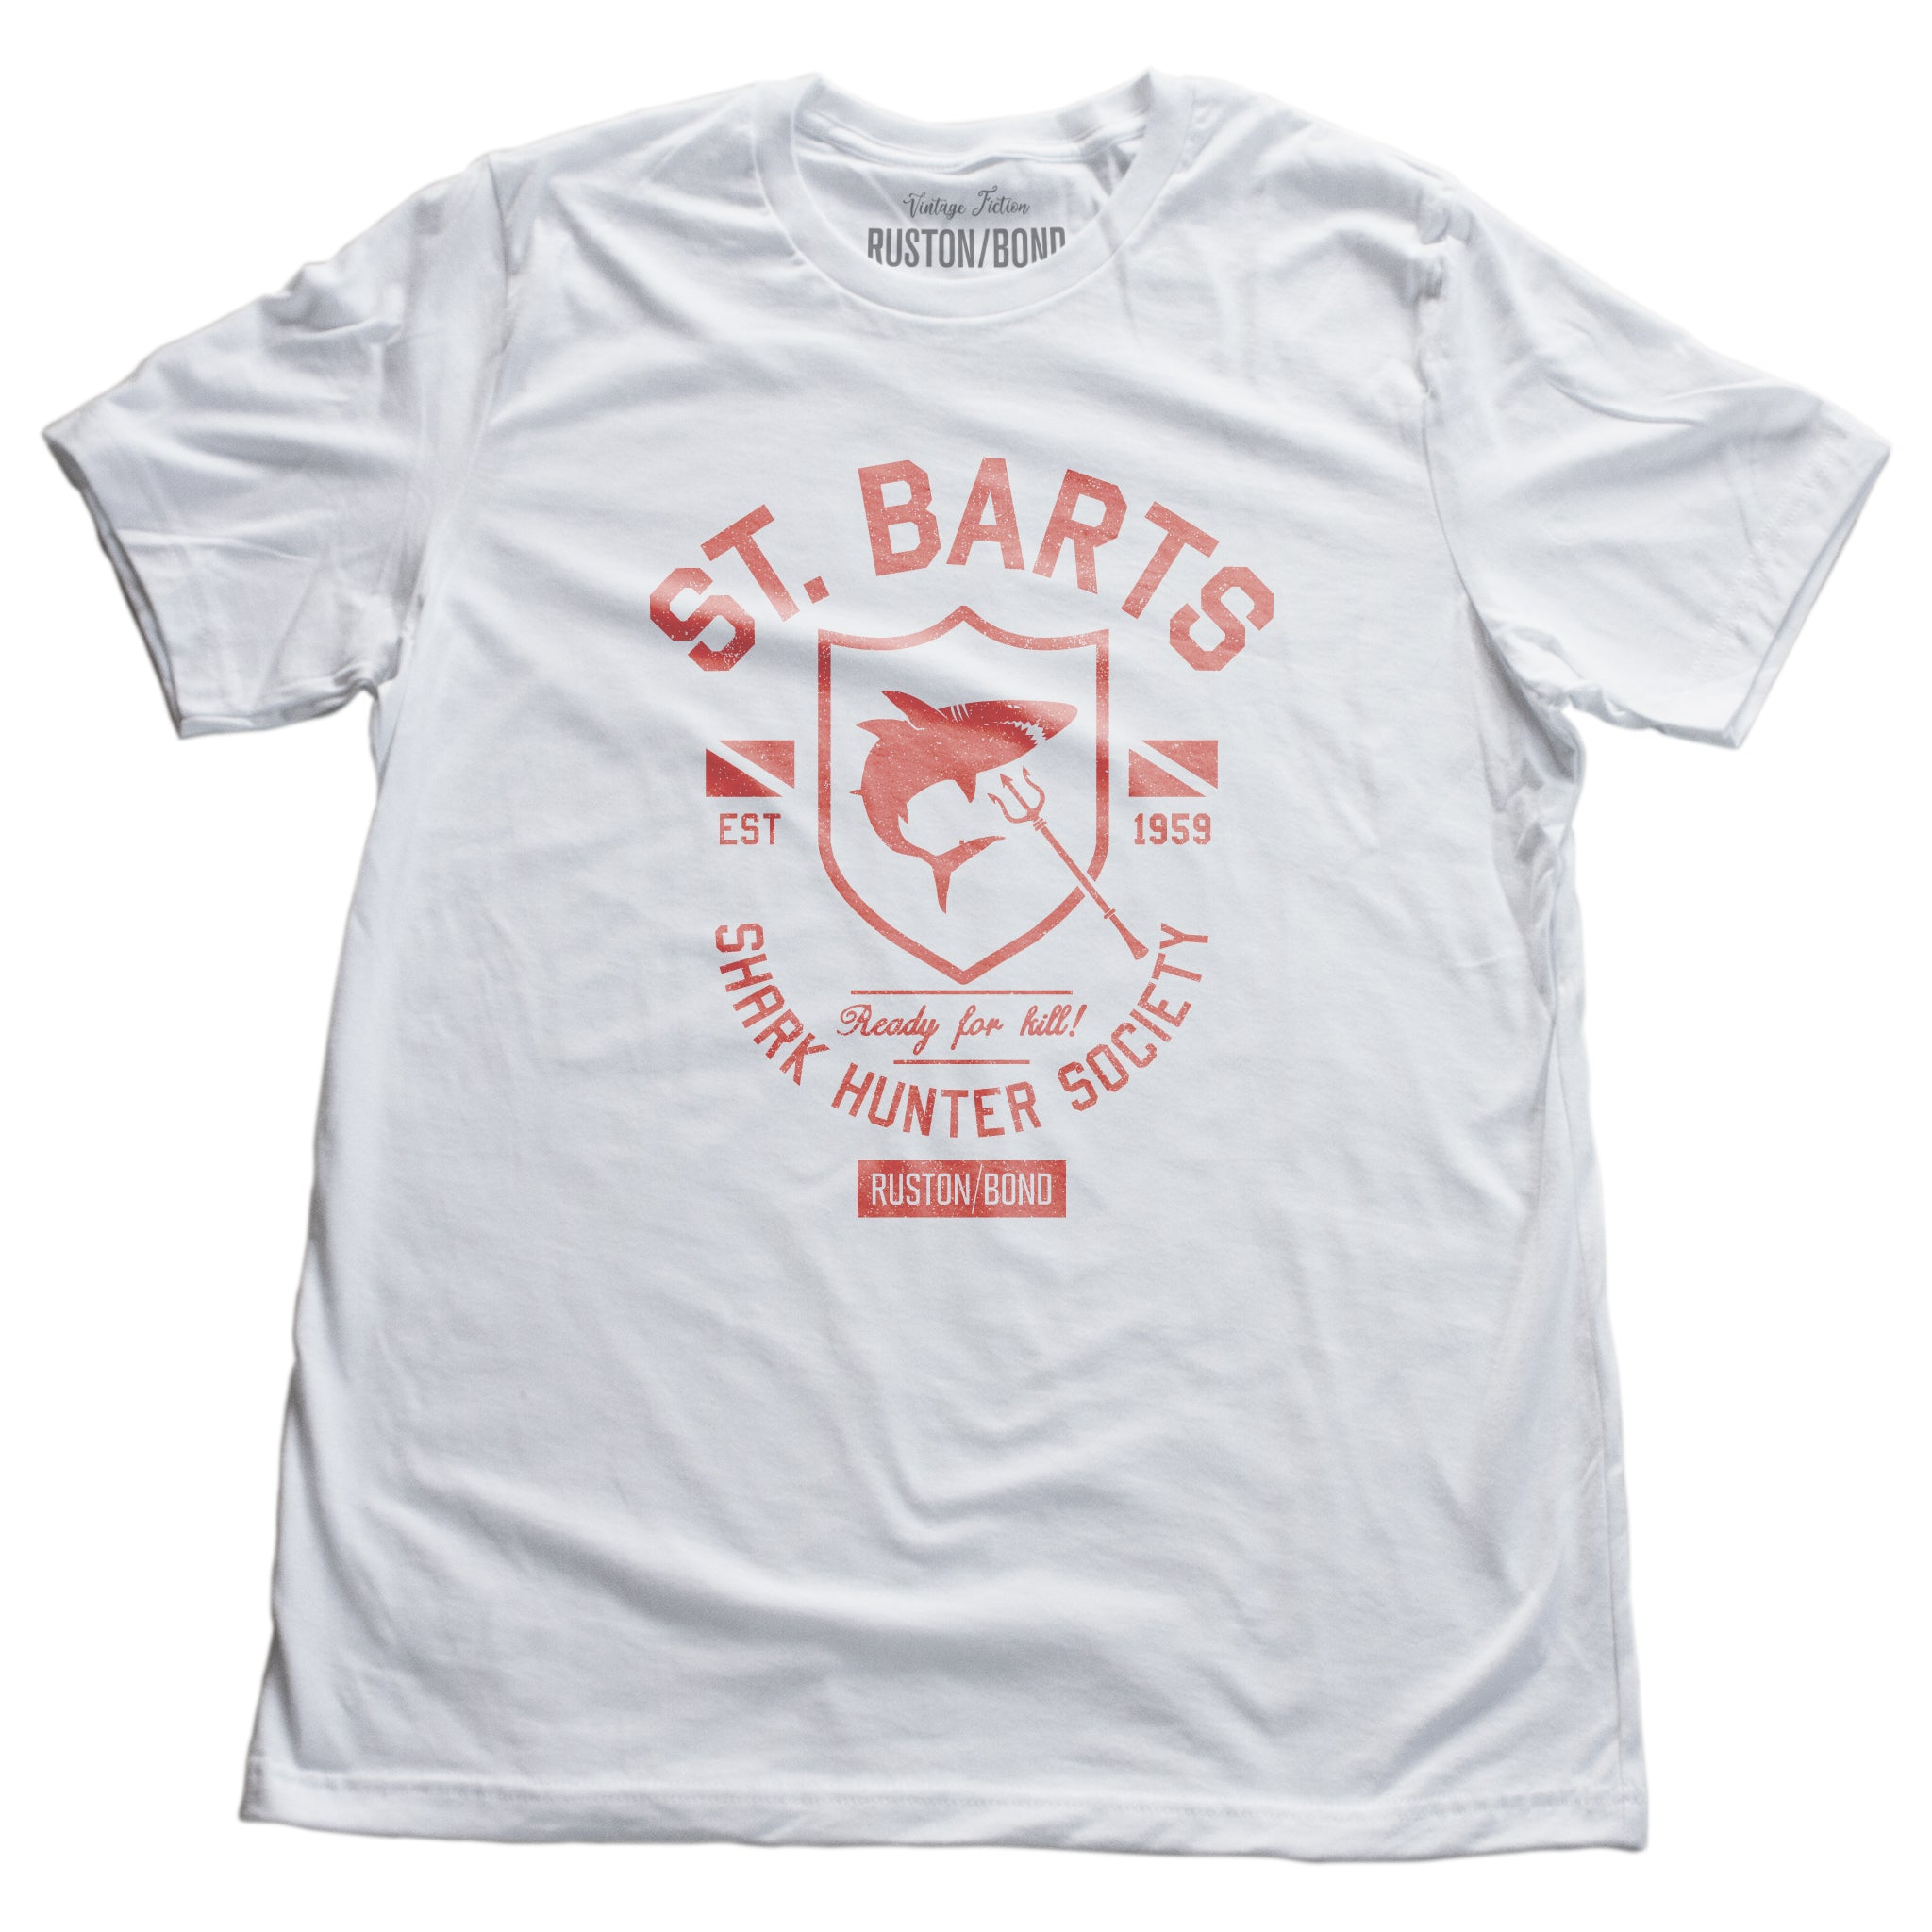 A vintage-inspired, retro design graphic t-shirt with sarcastic fictitious art, featuring a shark within a shield, for the imaginary St Bart's Shark Hunter Society. By fashion brand Ruston/Bond, for wolfsaint.net